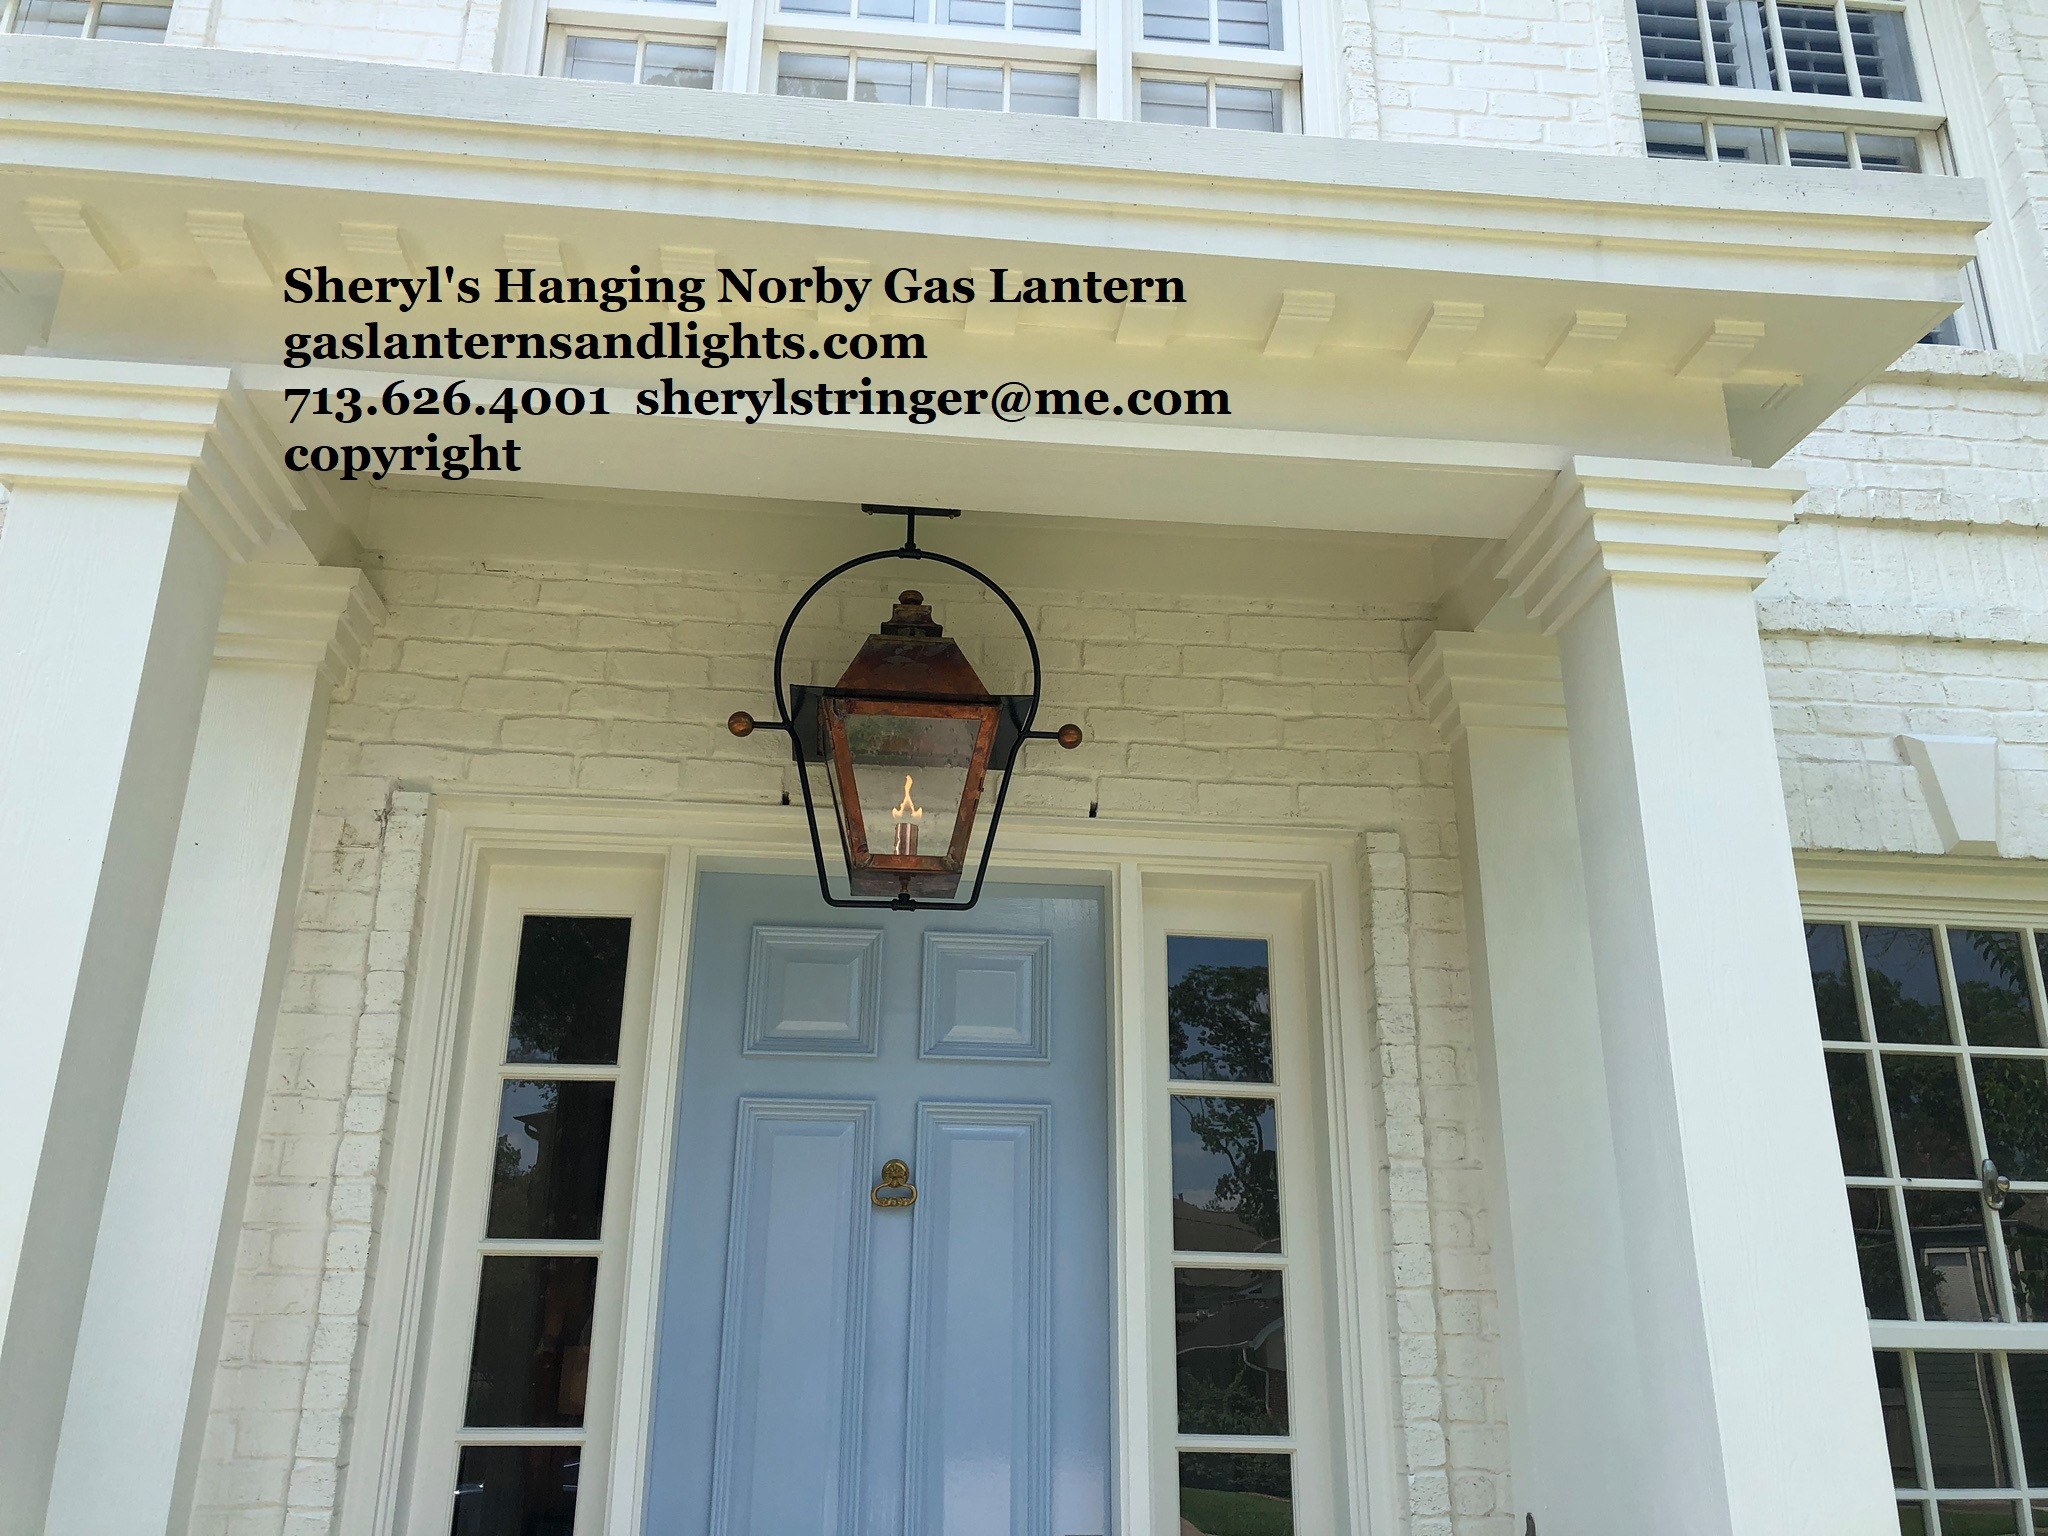 Sheryl's Hanging Gas Lanterns